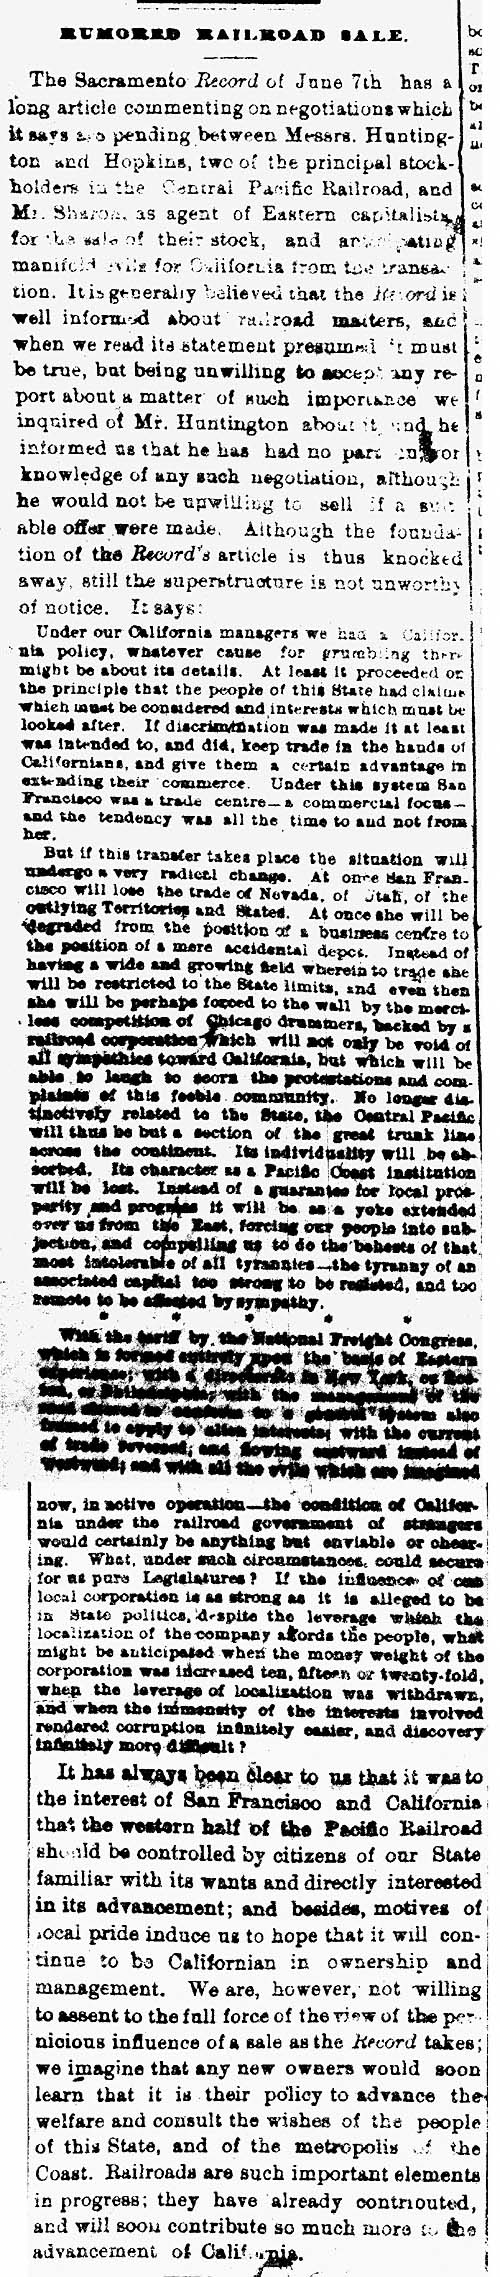 Daily Alta California 6-9-1873